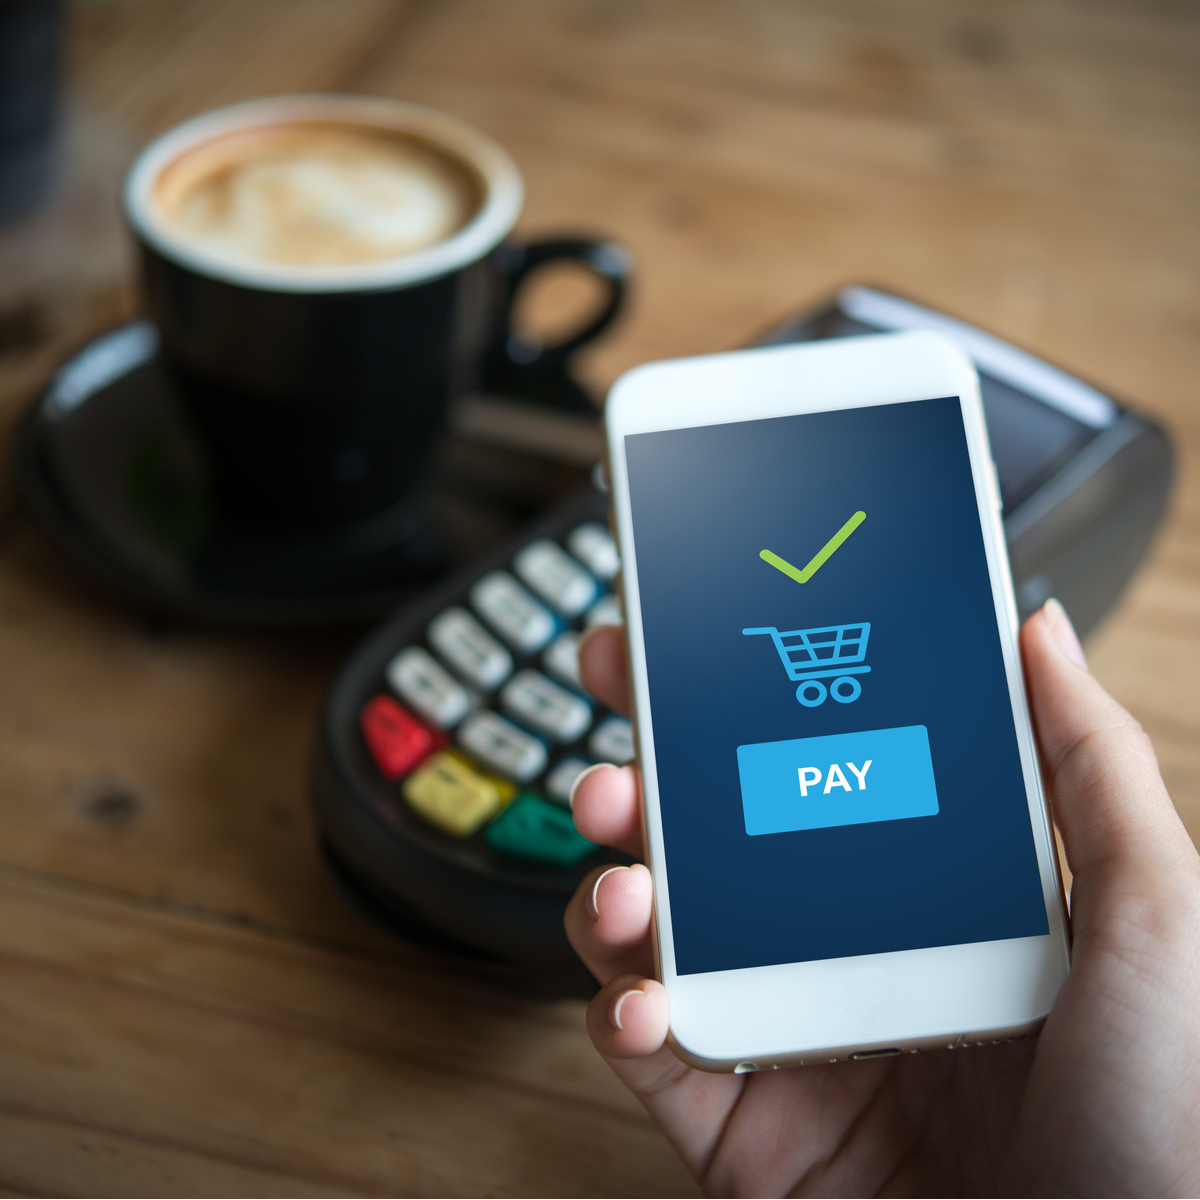 Why More People Are Not Adopting Mobile Payments